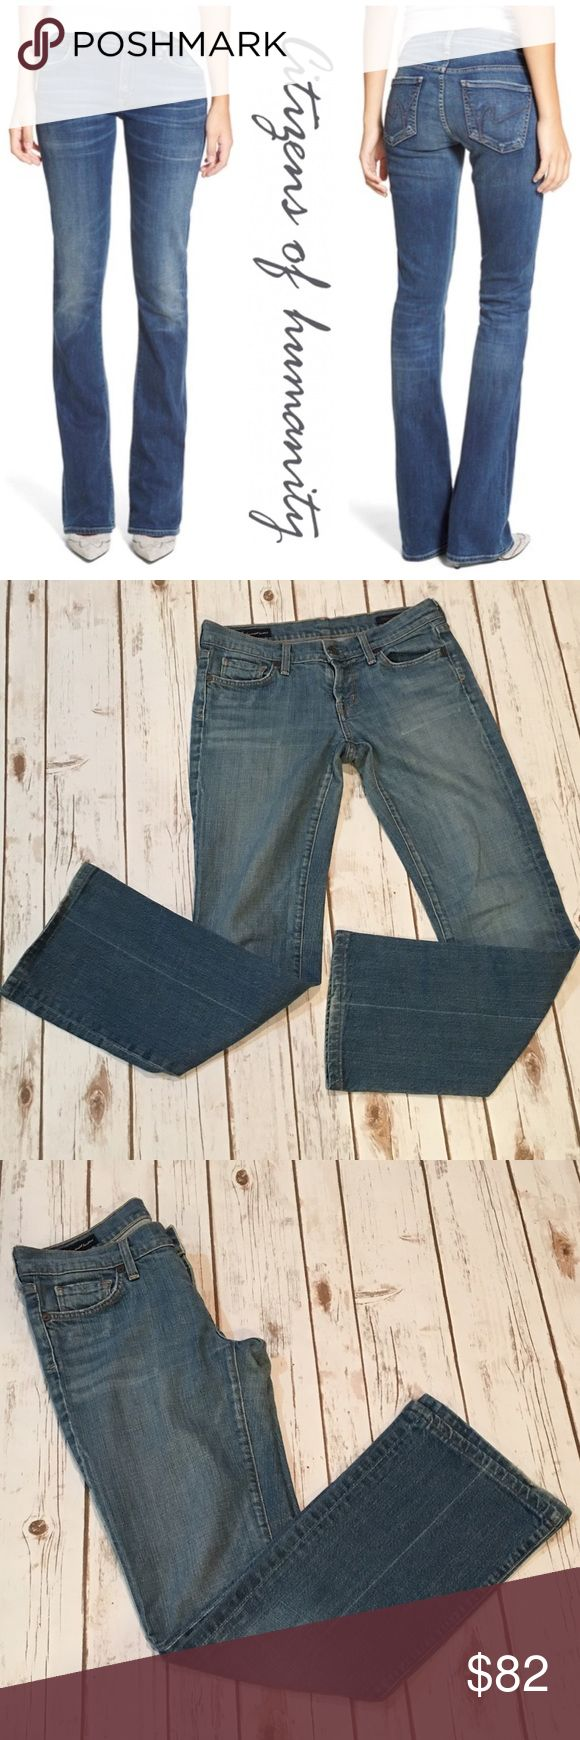 "Citizens of Humanity Boot Cut Jeans Preowned. Worn a handful of times. No rips, stains or marks. Front rise 8"" Back rise 12"" Inseam 30"" . Pic 1 for modeling purposes only. NO TRADES. Reasonable offers considered through offer button only. Citizens of Humanity Jeans Boot Cut"